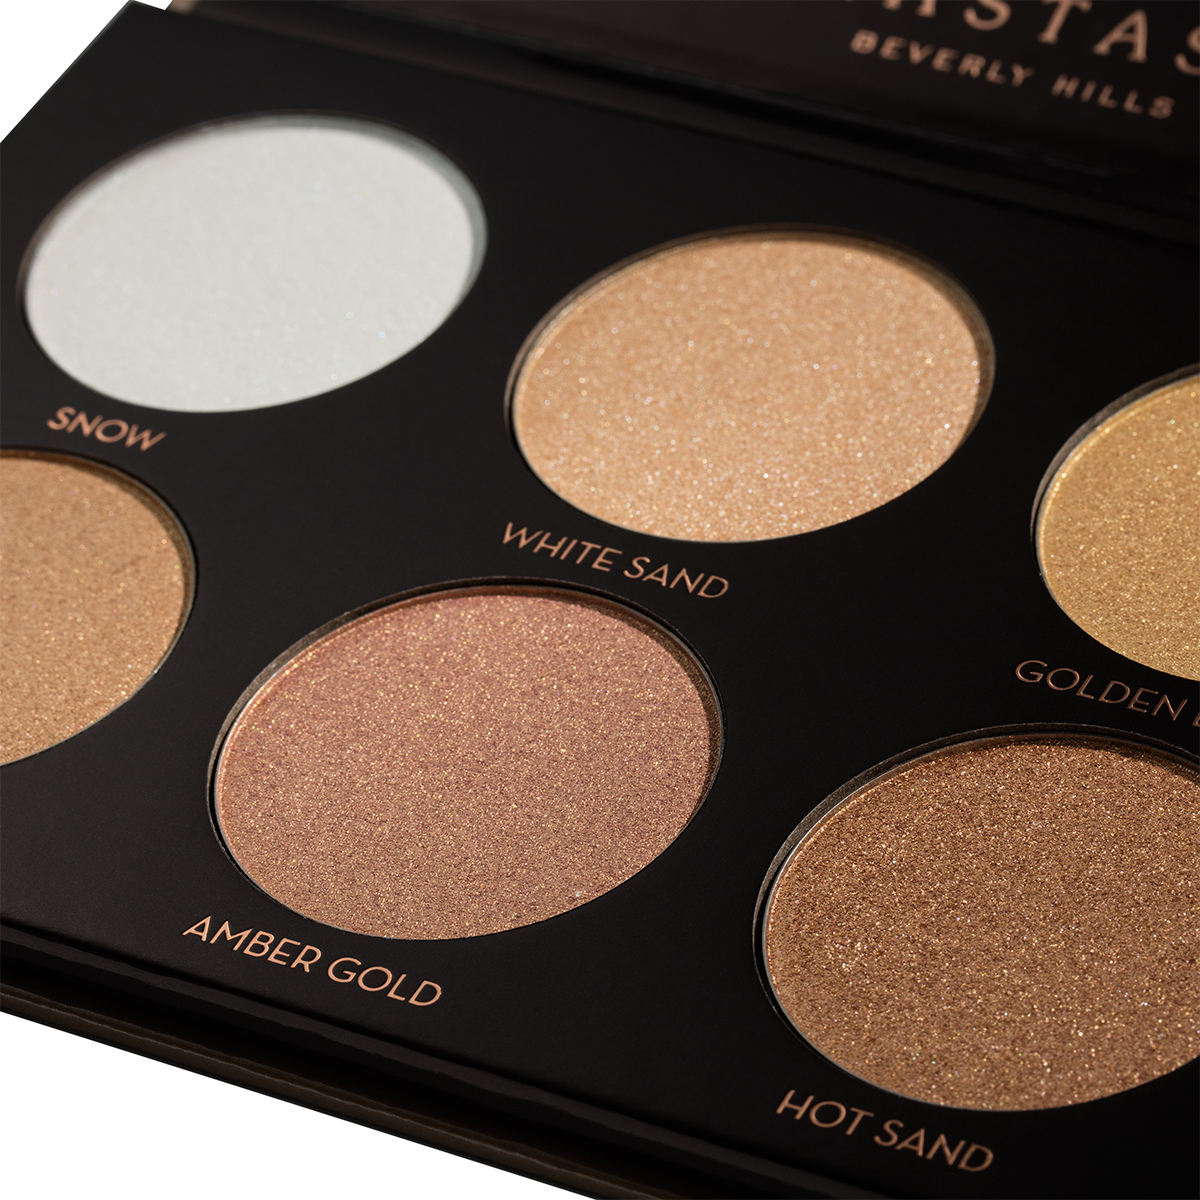 Anastasia Beverly Hills Glow kits: Sweets palette